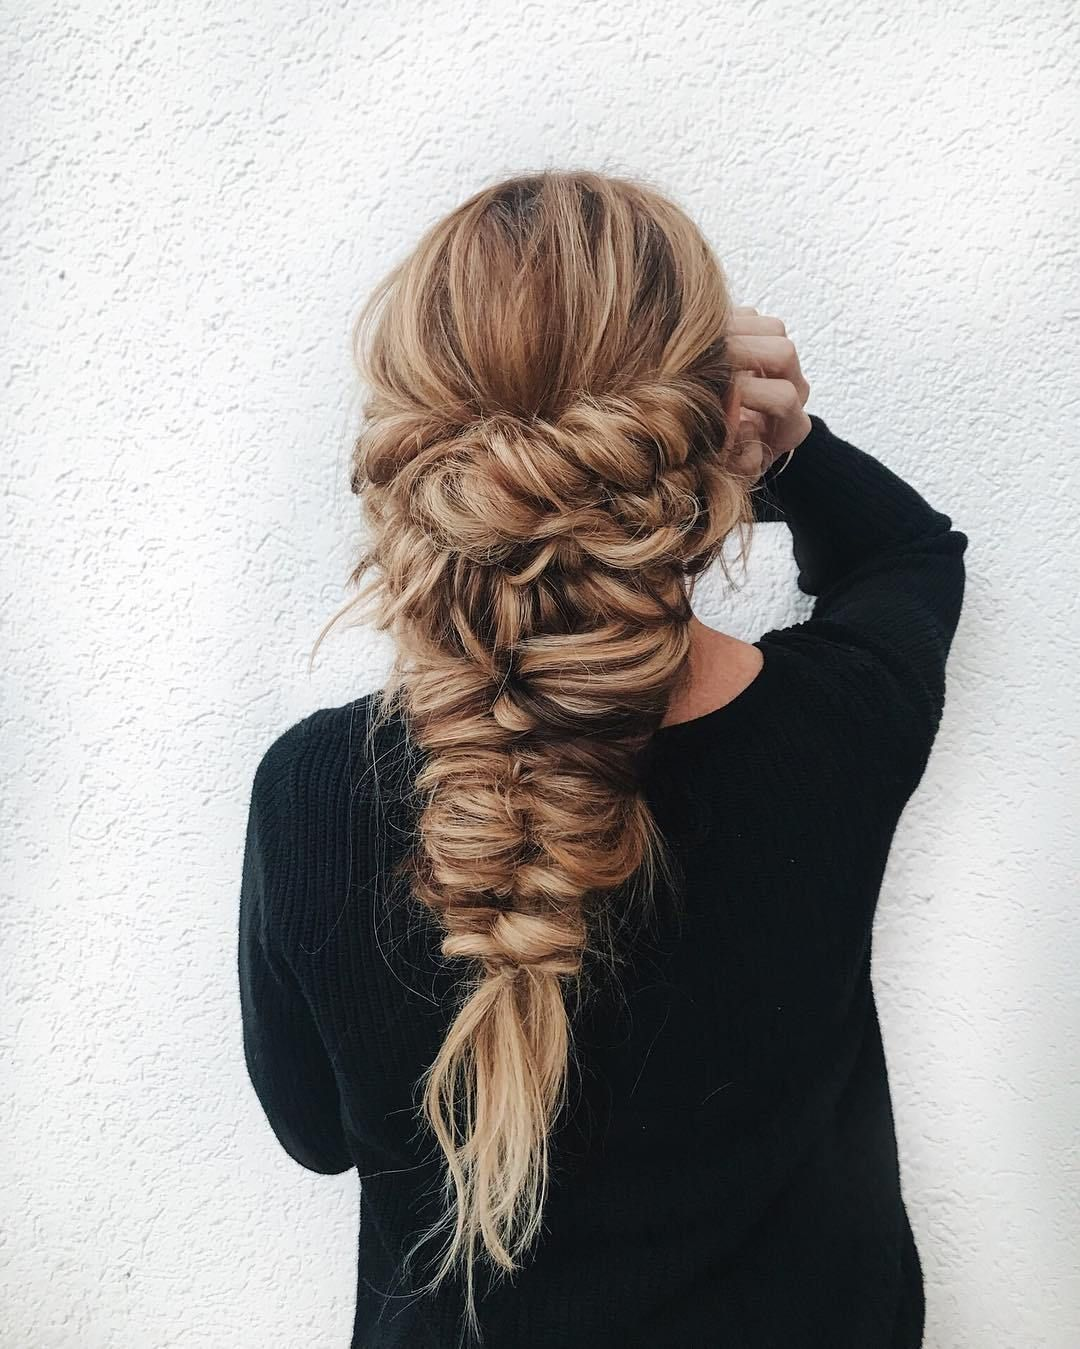 49 Boho Braid Hairstyles to Try - Boho braid hairstyle #braids #hairstyles #bohohairstyles